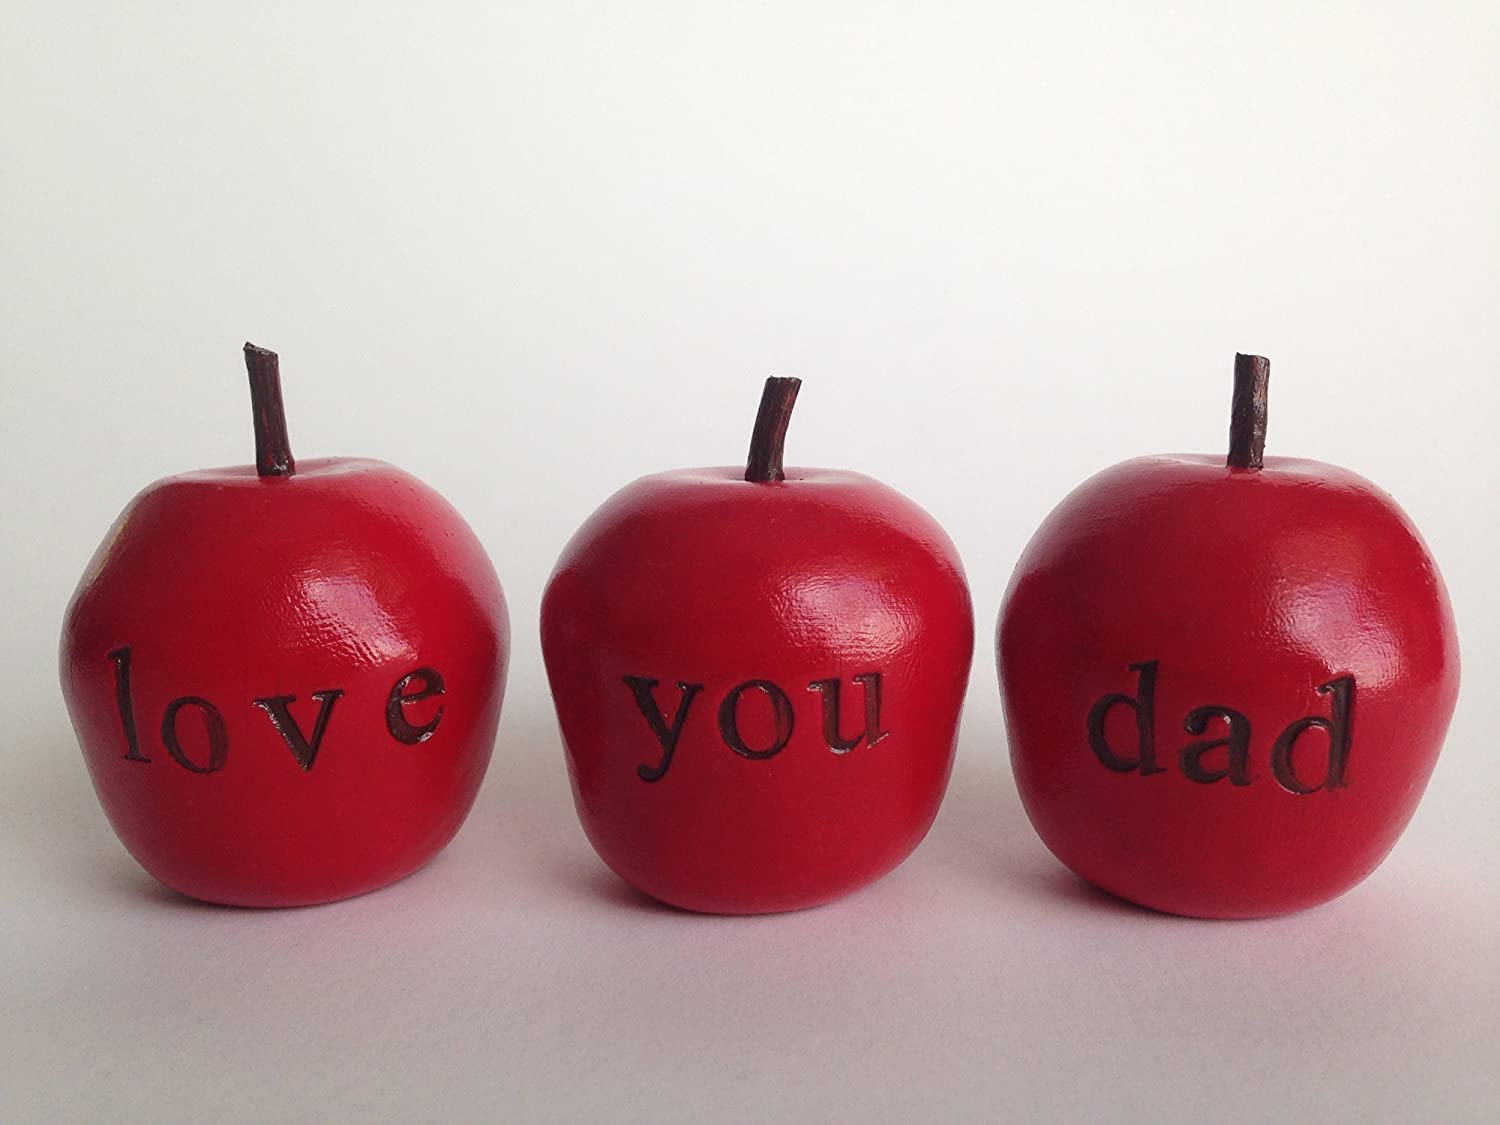 "Love you dad Handcrafted and Stamped Polymer Clay expressions decoration apple gift set great gift for Father's Day, Wedding, gift idea from daughter and son. ""Handcrafted in the USA."""